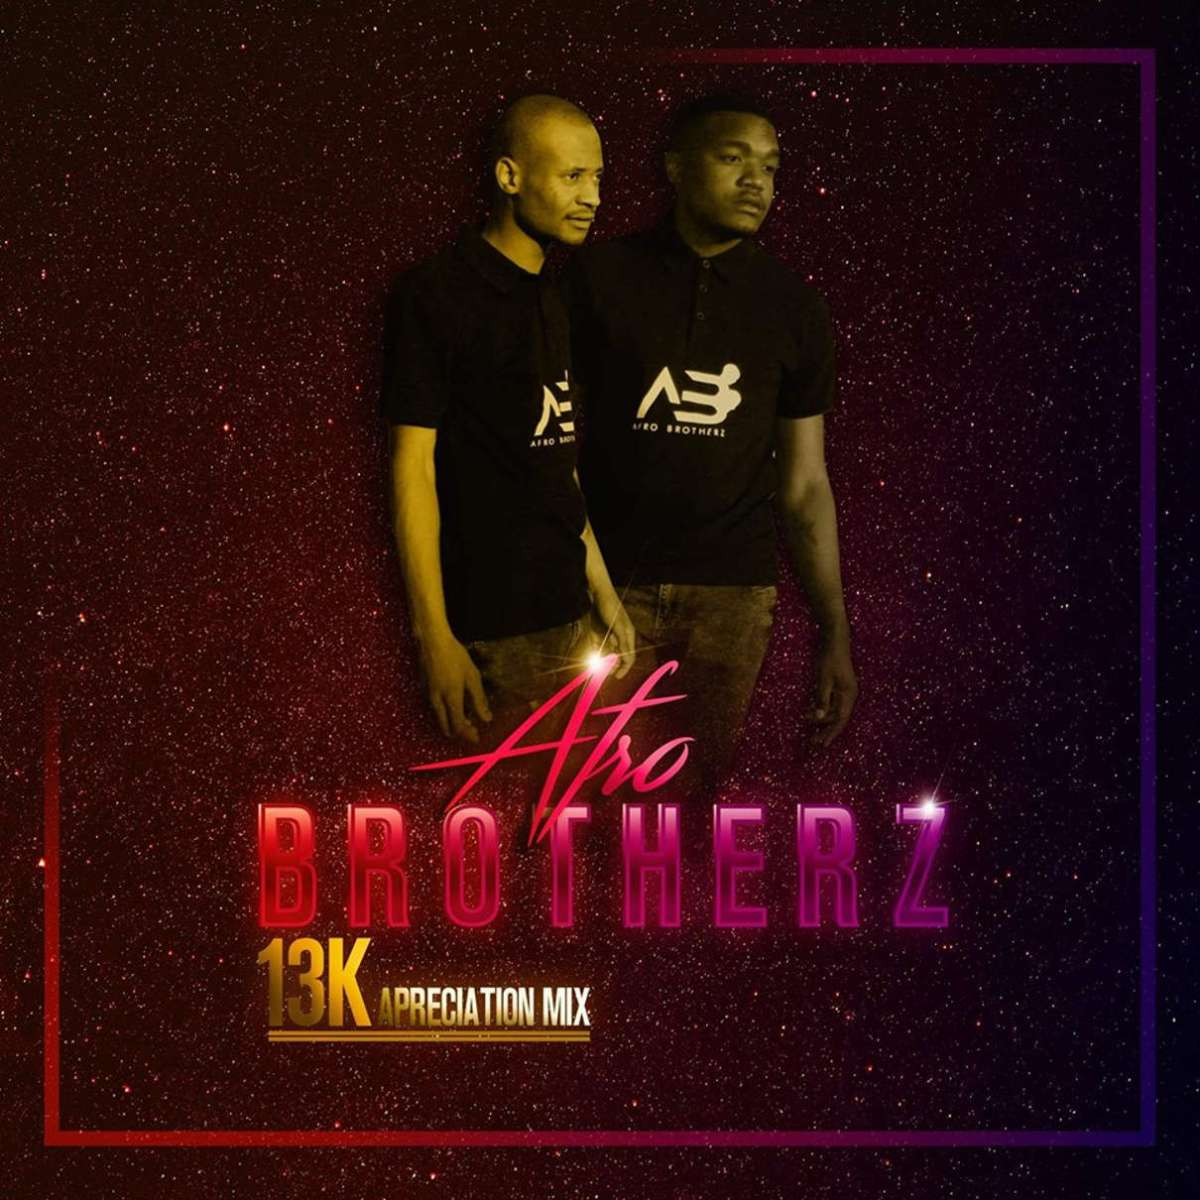 Afro Brotherz - 13K Appreciation Mix